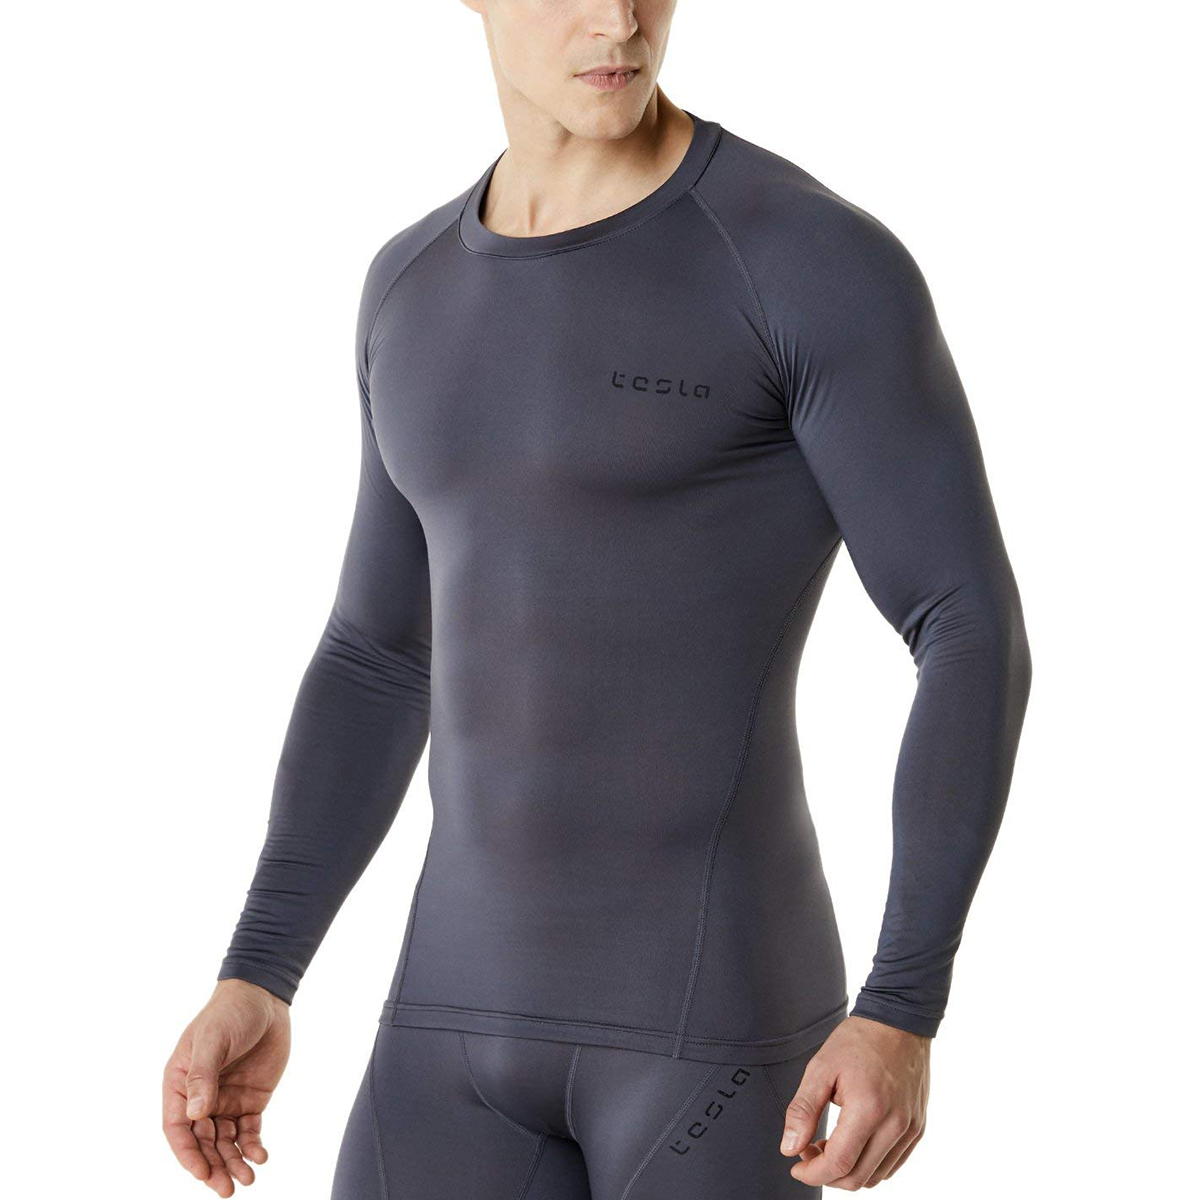 Tesla YUD34 Thermal Winter Gear Baselayer Long Sleeve Compression Top